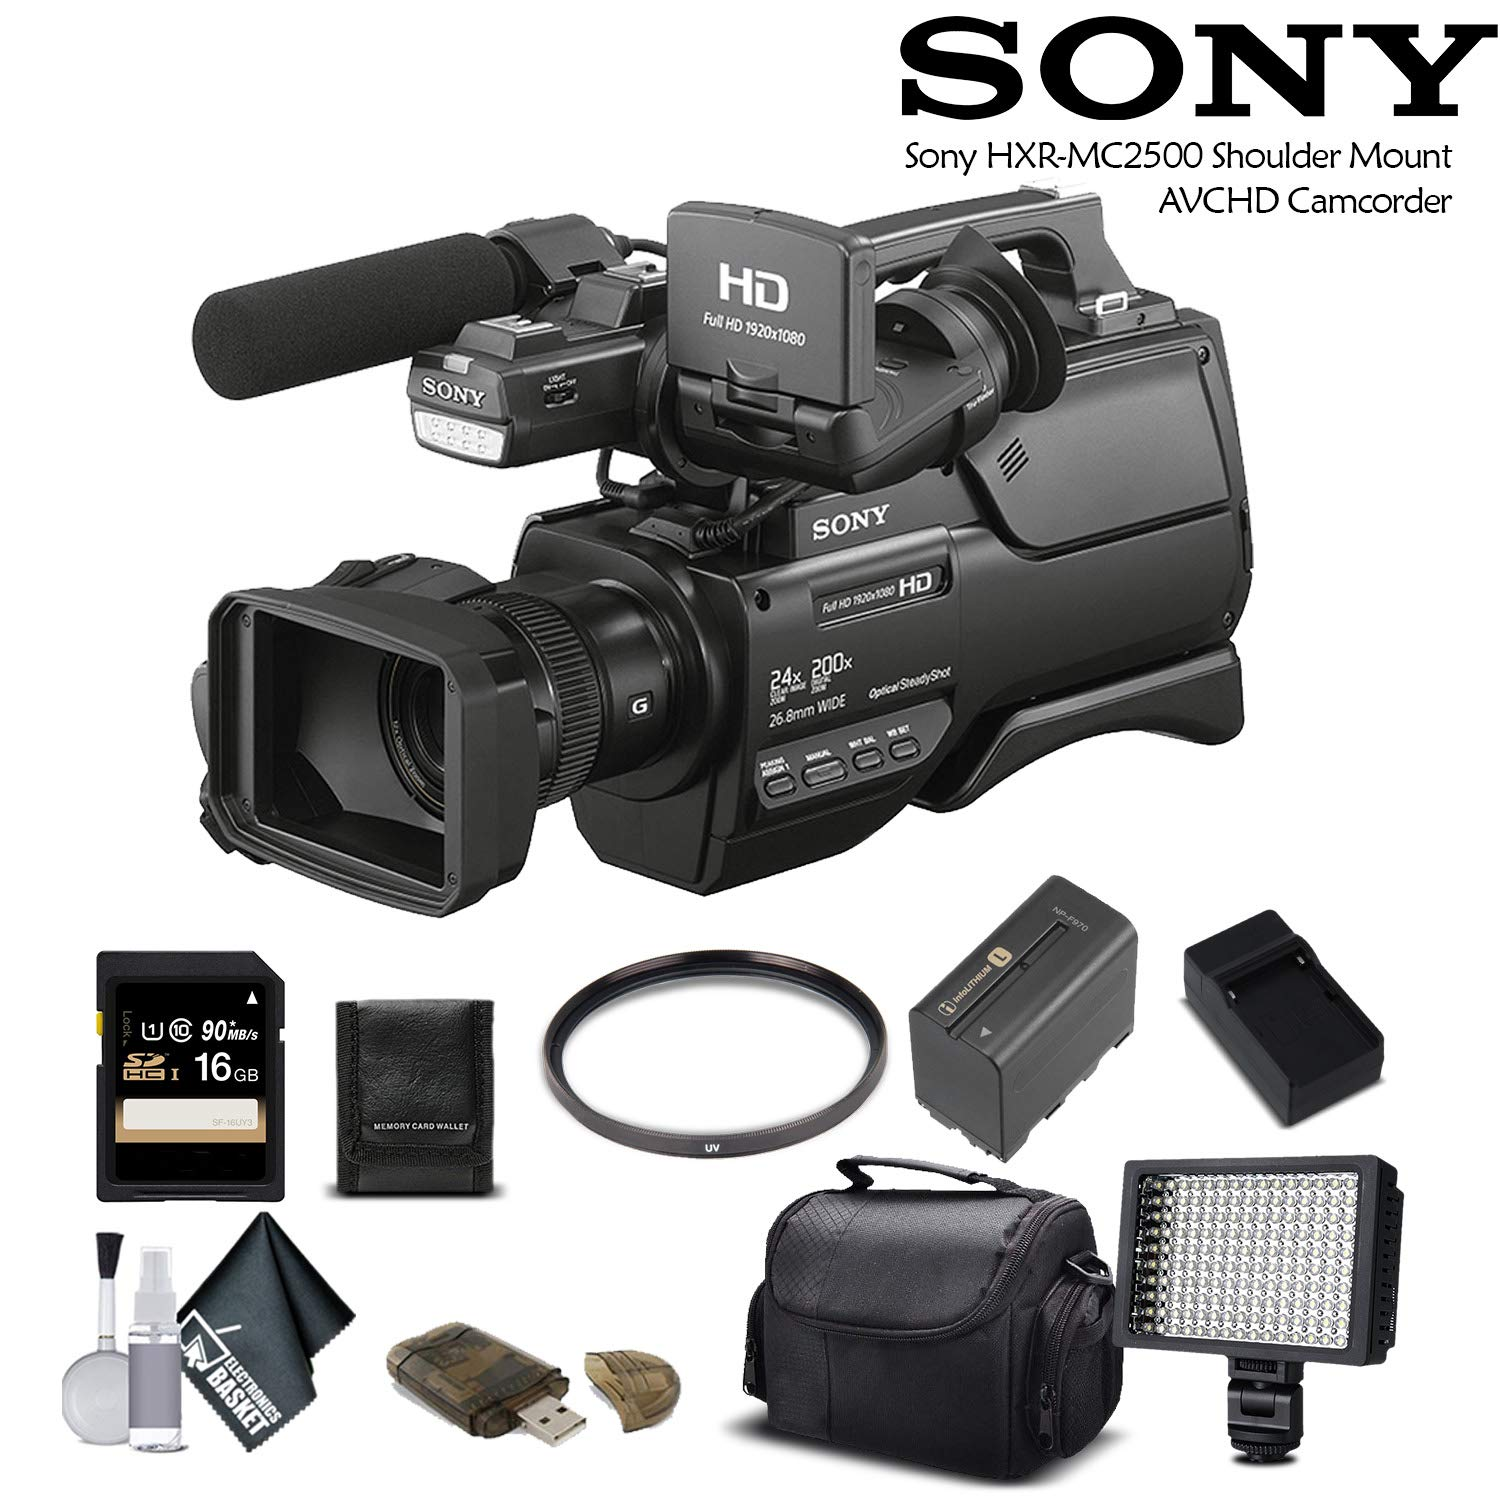 Sony HXR-MC2500 Shoulder Mount AVCHD Camcorder (HXR-MC2500) with 16GB Memory Card, Extra Battery and Charger, UV Filter, LED Light, Case and More. - Starter Bundle